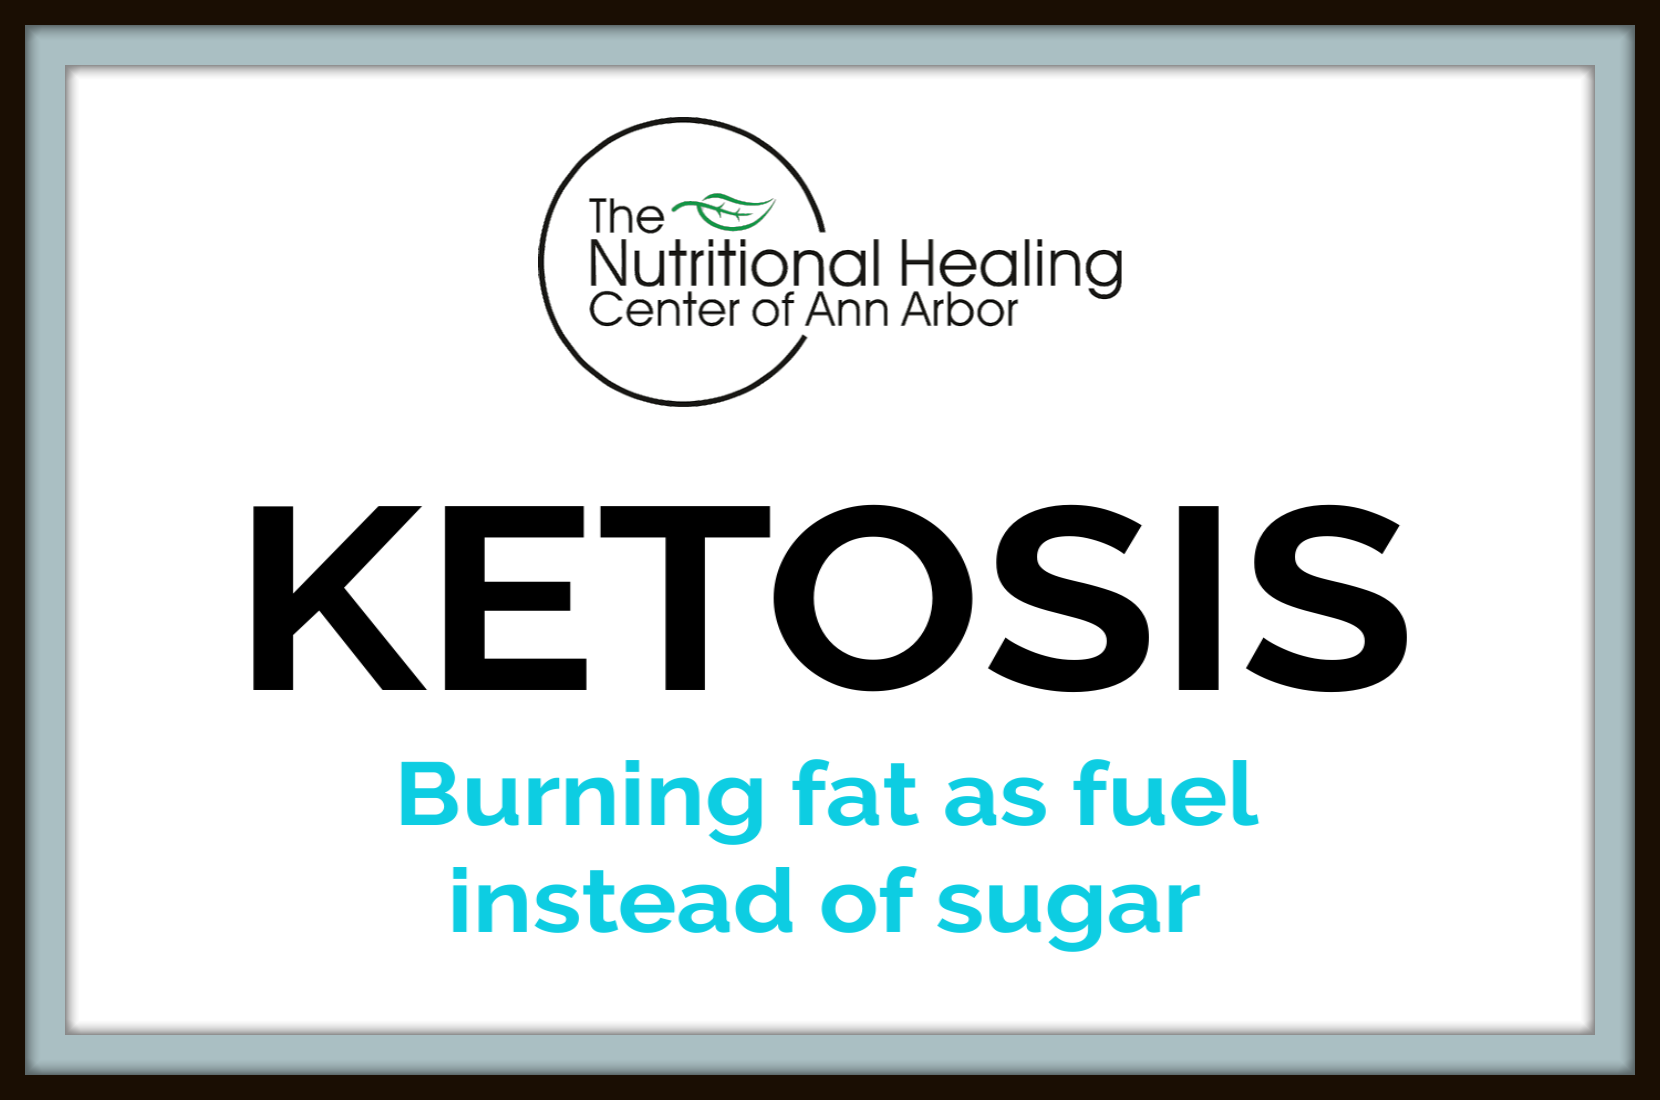 Ketosis burn fat as fuel instead of sugar